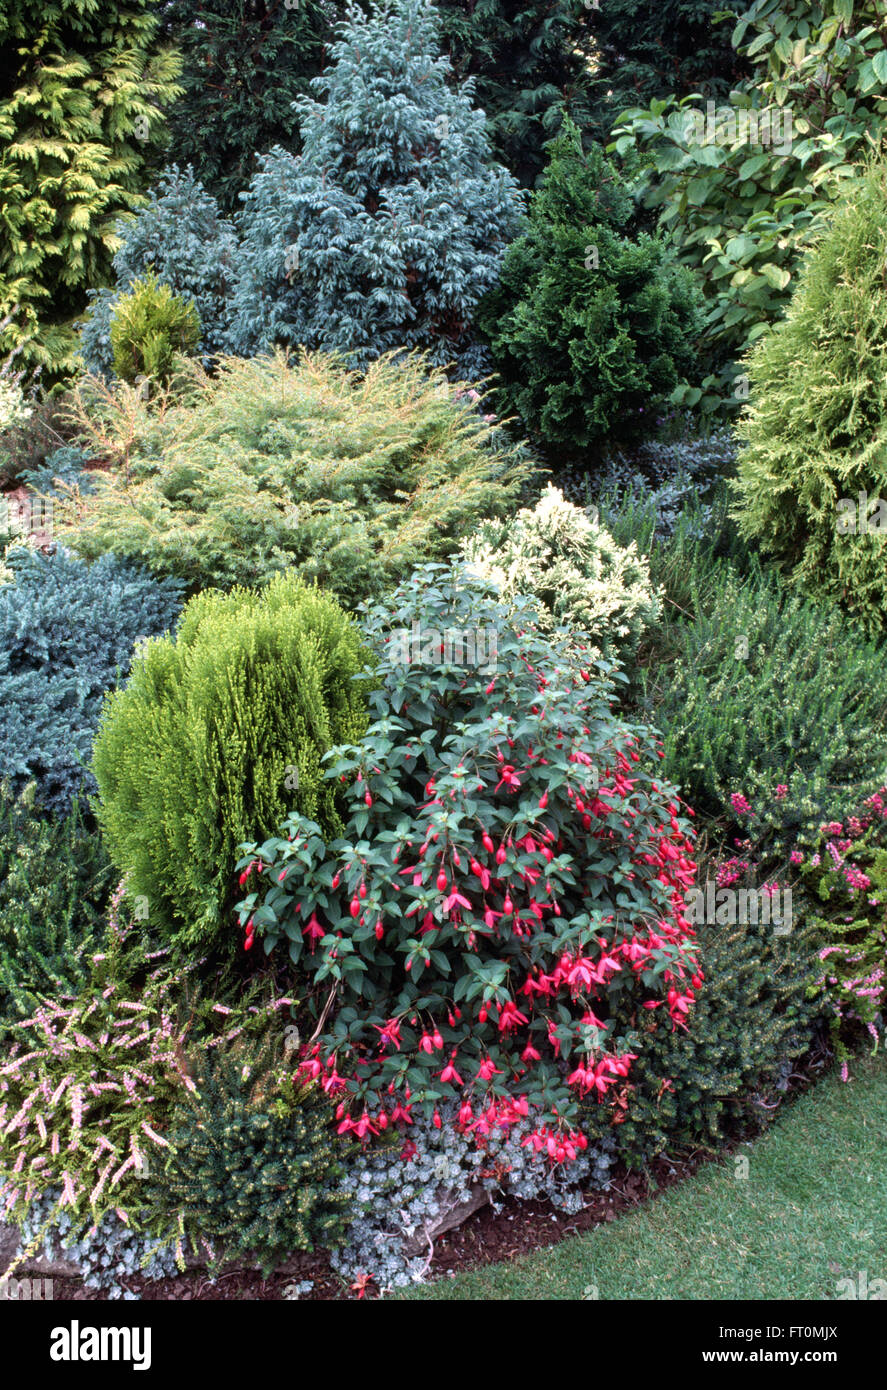 Pink fuchsia and low growing conifers in a well stocked border in a suburban garden - Stock Image